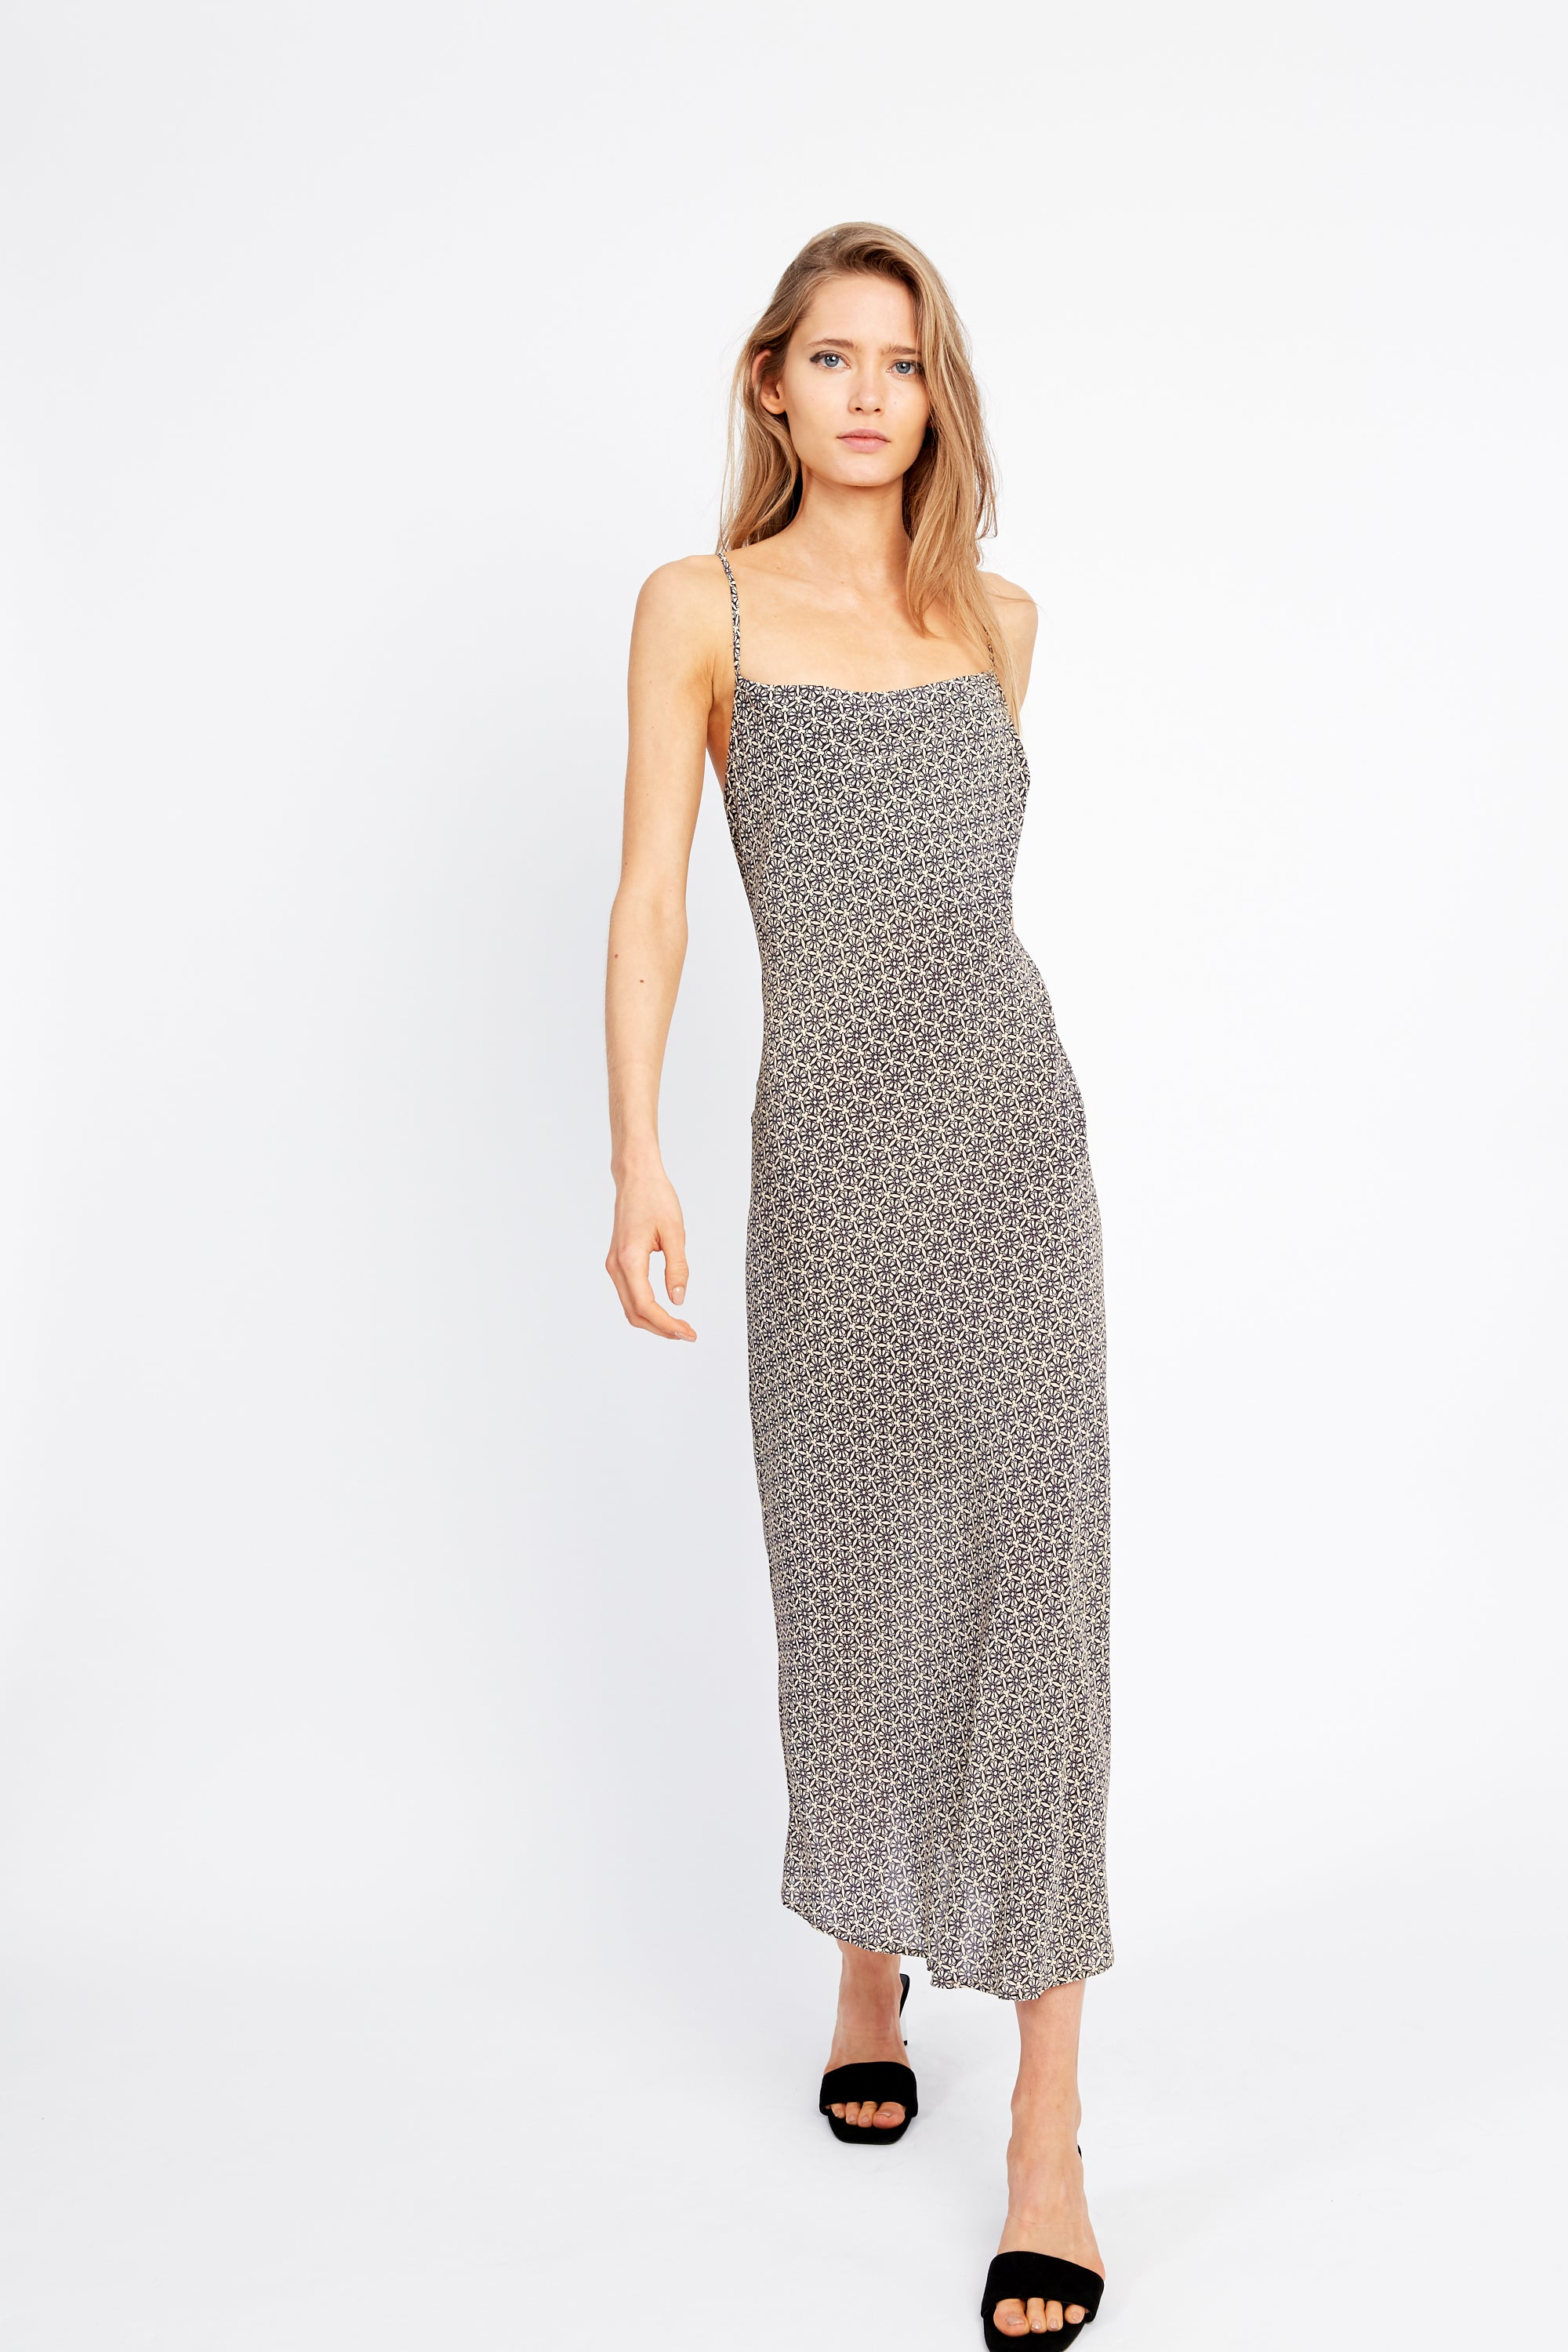 MOSAIC BIAS SLIP DRESS | MOSAIC